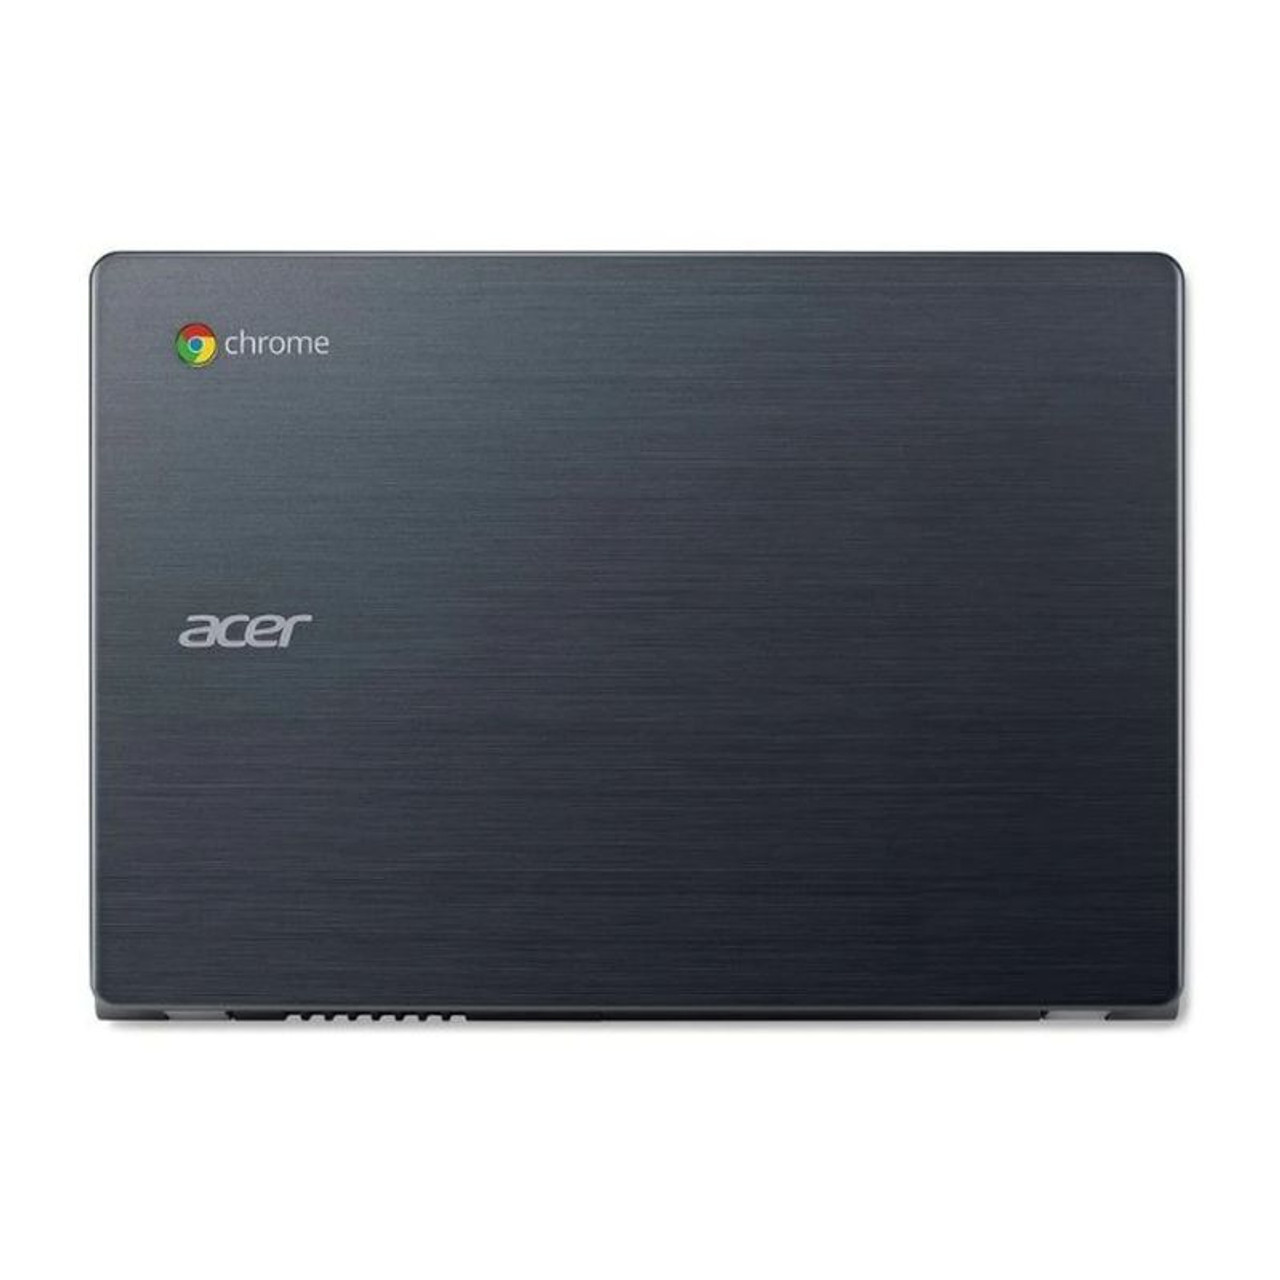 Acer Chromebook 11 C740 with 16GB SSD